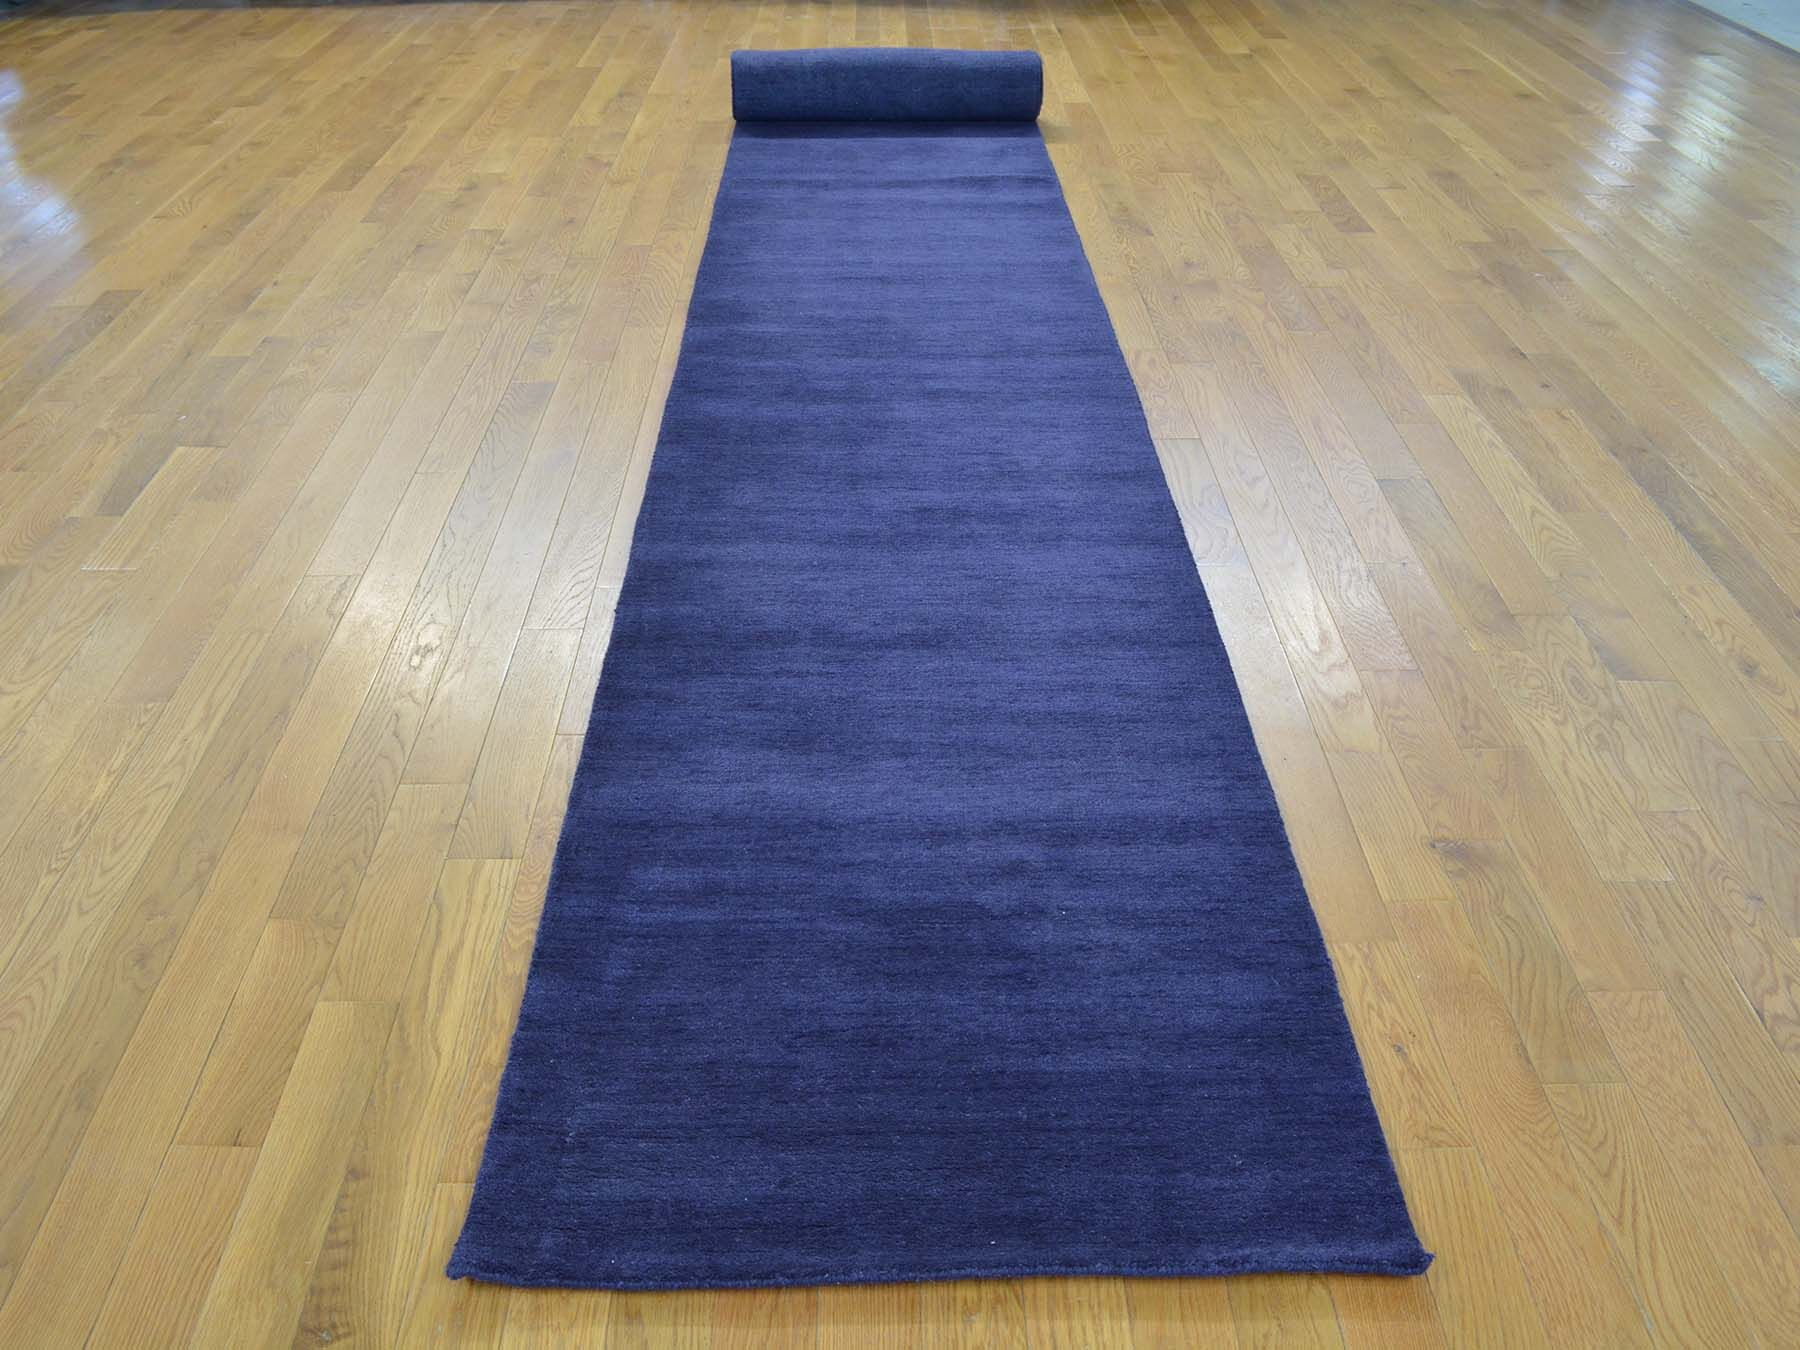 One-of-a-Kind Becker Plush Handwoven Blue Wool Area Rug